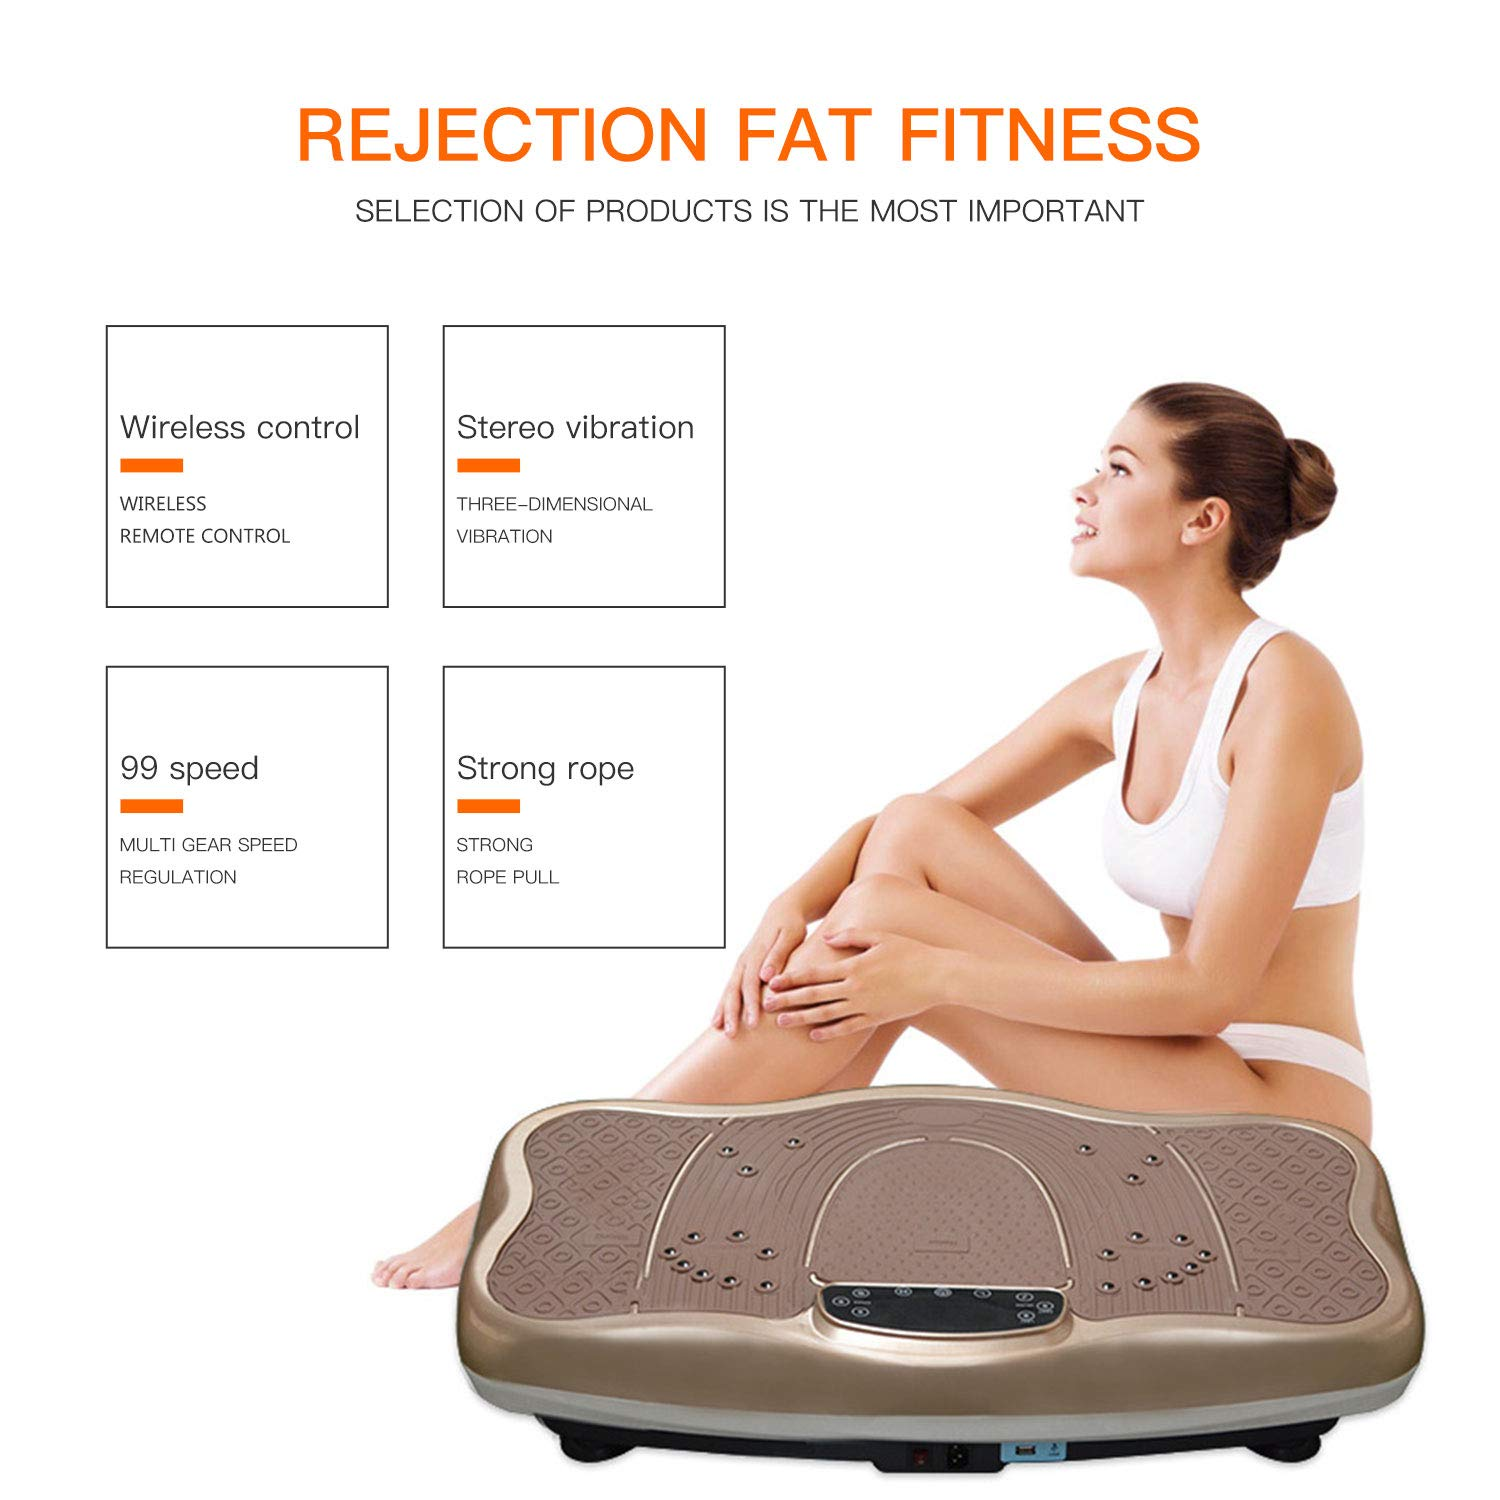 Gharpbik Vibration Fitness Machine Workout Platform Vibrating Platform Exercise & Workout Trainer, Balance Plate Exercise Equipment with Built-in Bluetooth Speakers(SP-CFM21) by Gharpbik (Image #4)